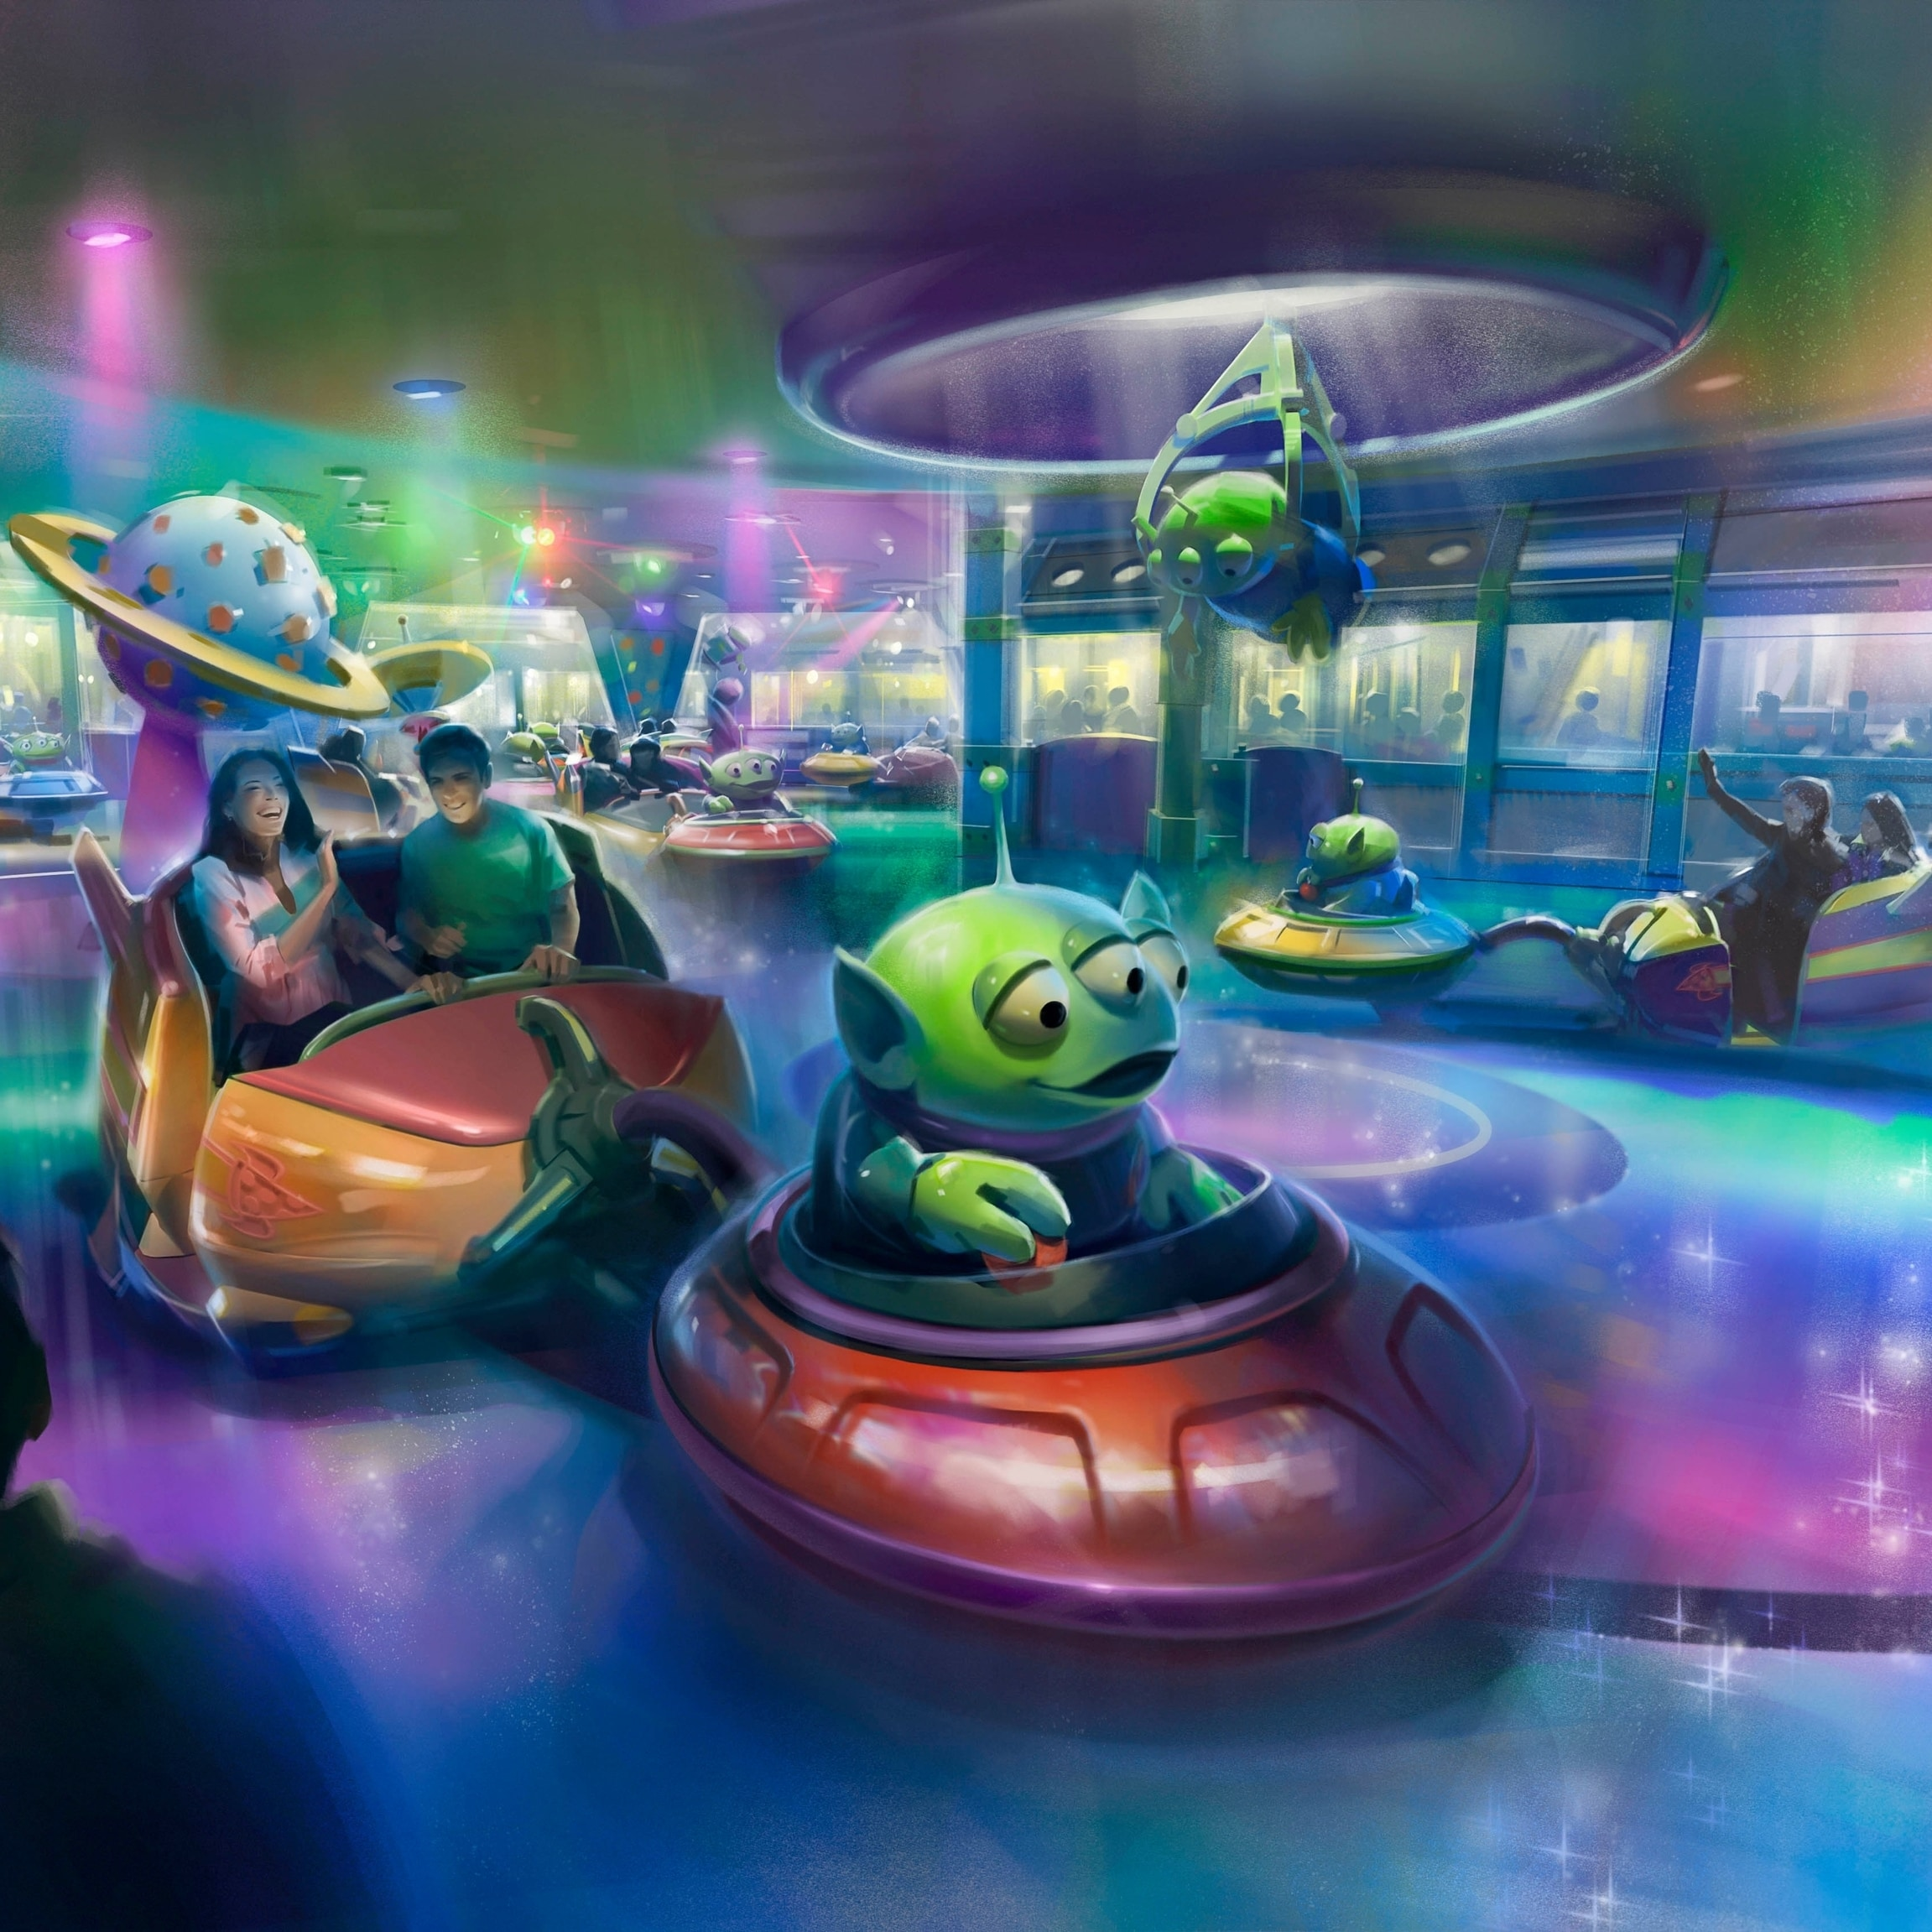 See a First Look at the Alien Swirling Saucers Coming to Toy Story Land at Walt Disney World